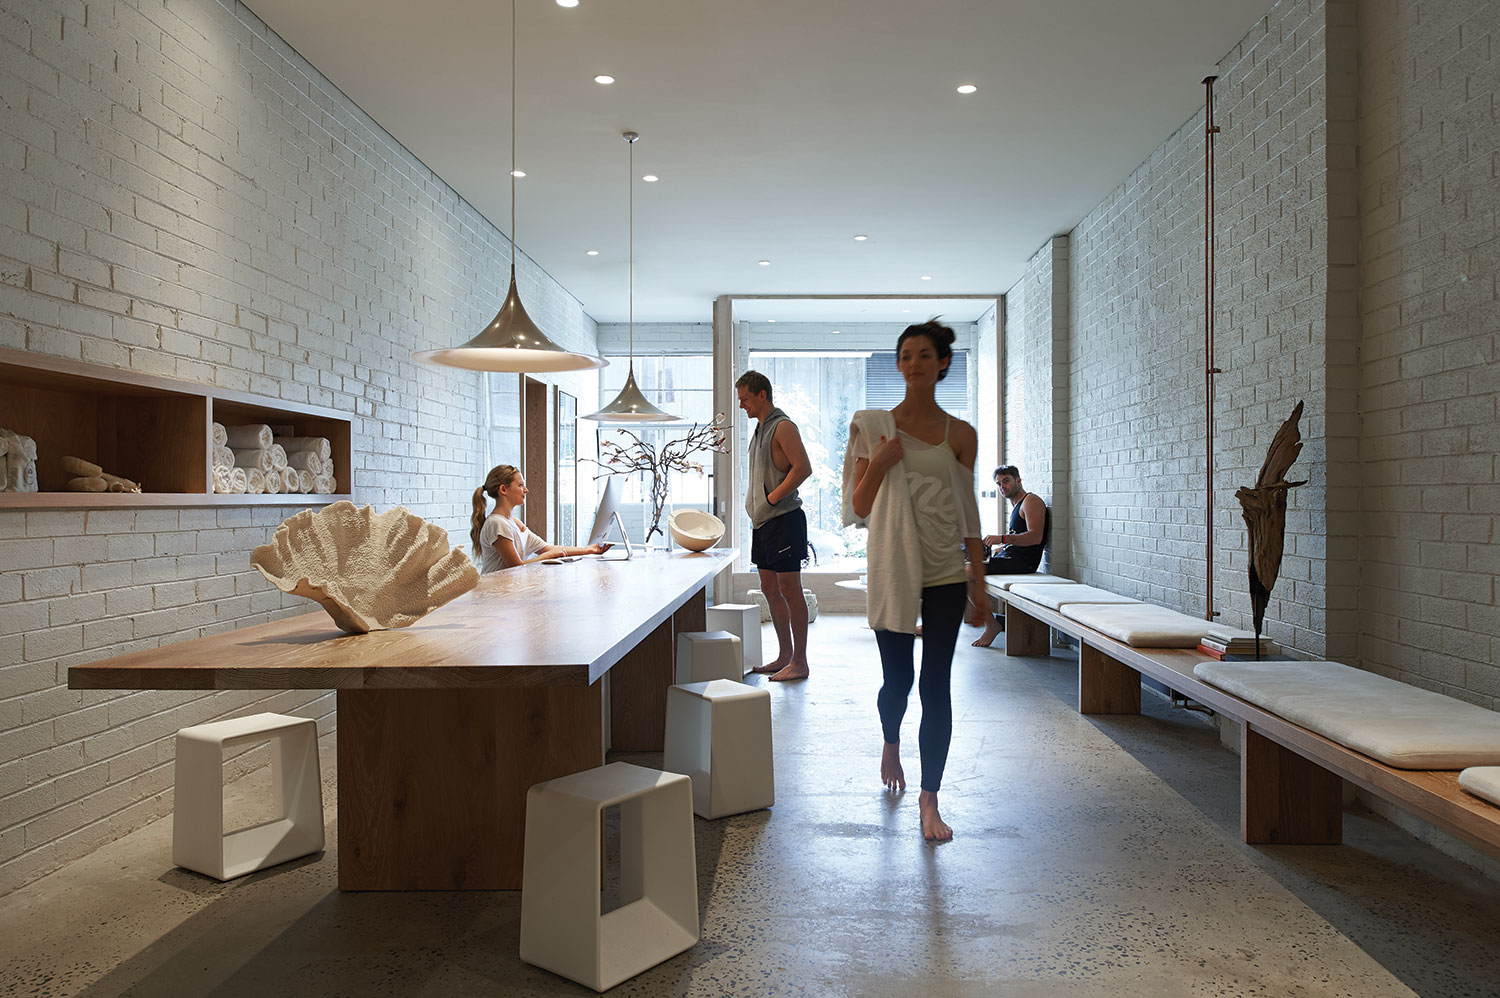 One Hot Yoga in Melbourne by Robert Mills Architects | Yellowtrace.